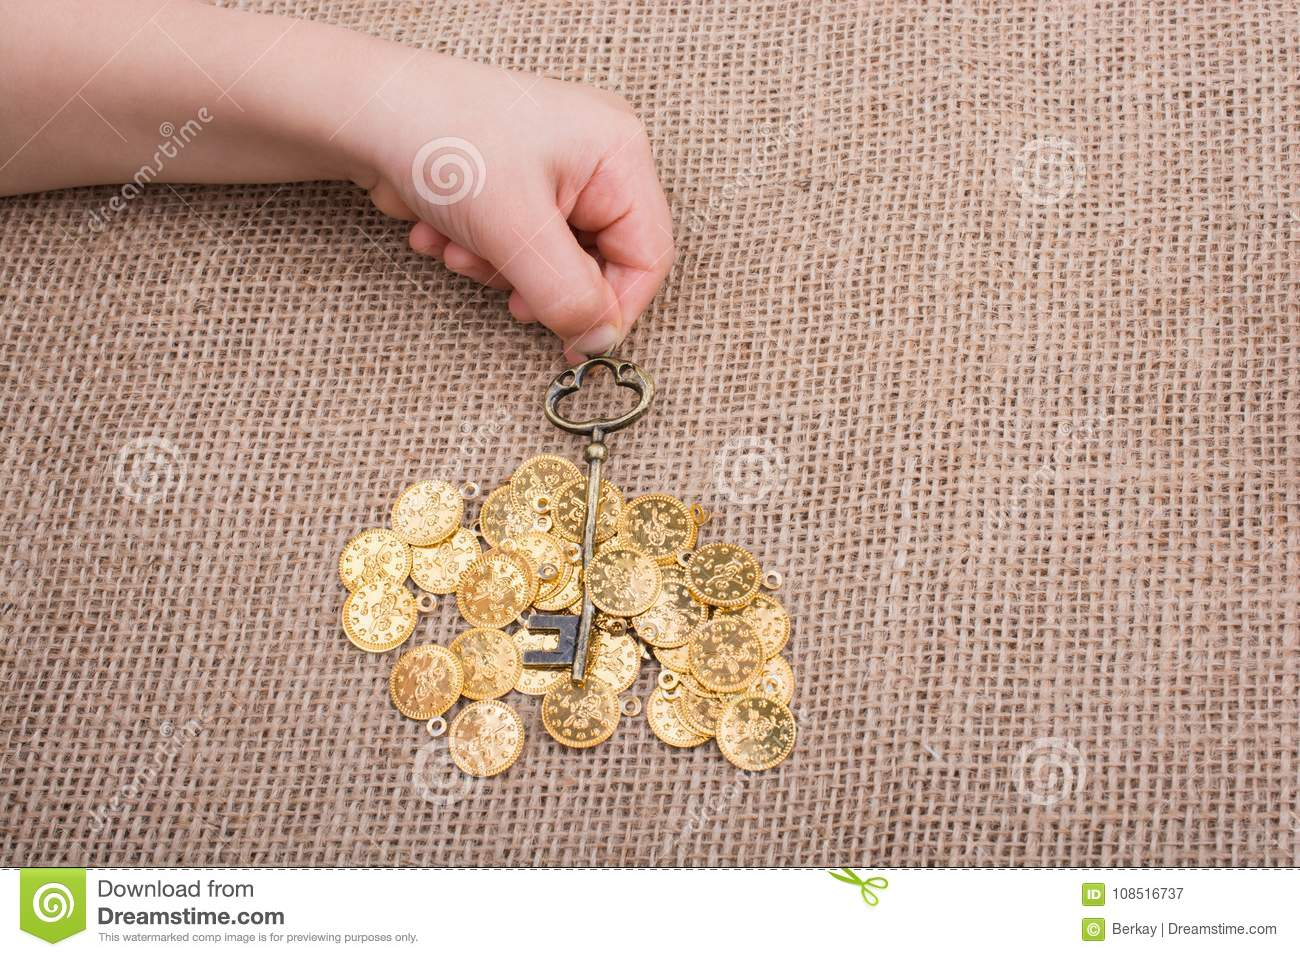 Hand Holding A Retro Styled Gold Color Key Stock Image - Image of